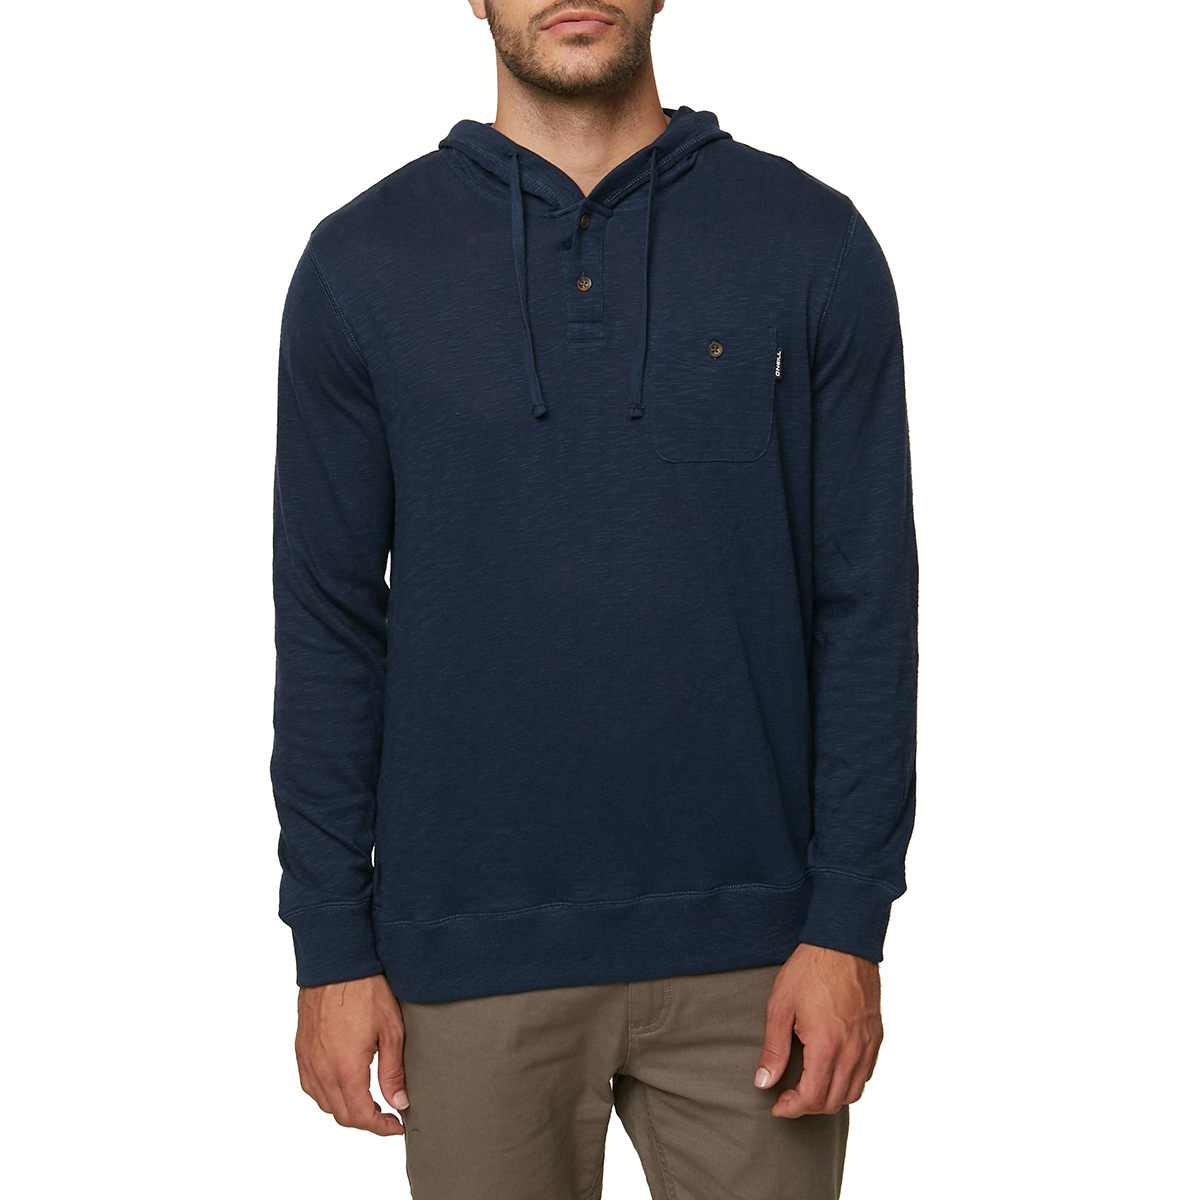 O'neill Guys' Stinson Henley Pullover Hoodie - Blue, L